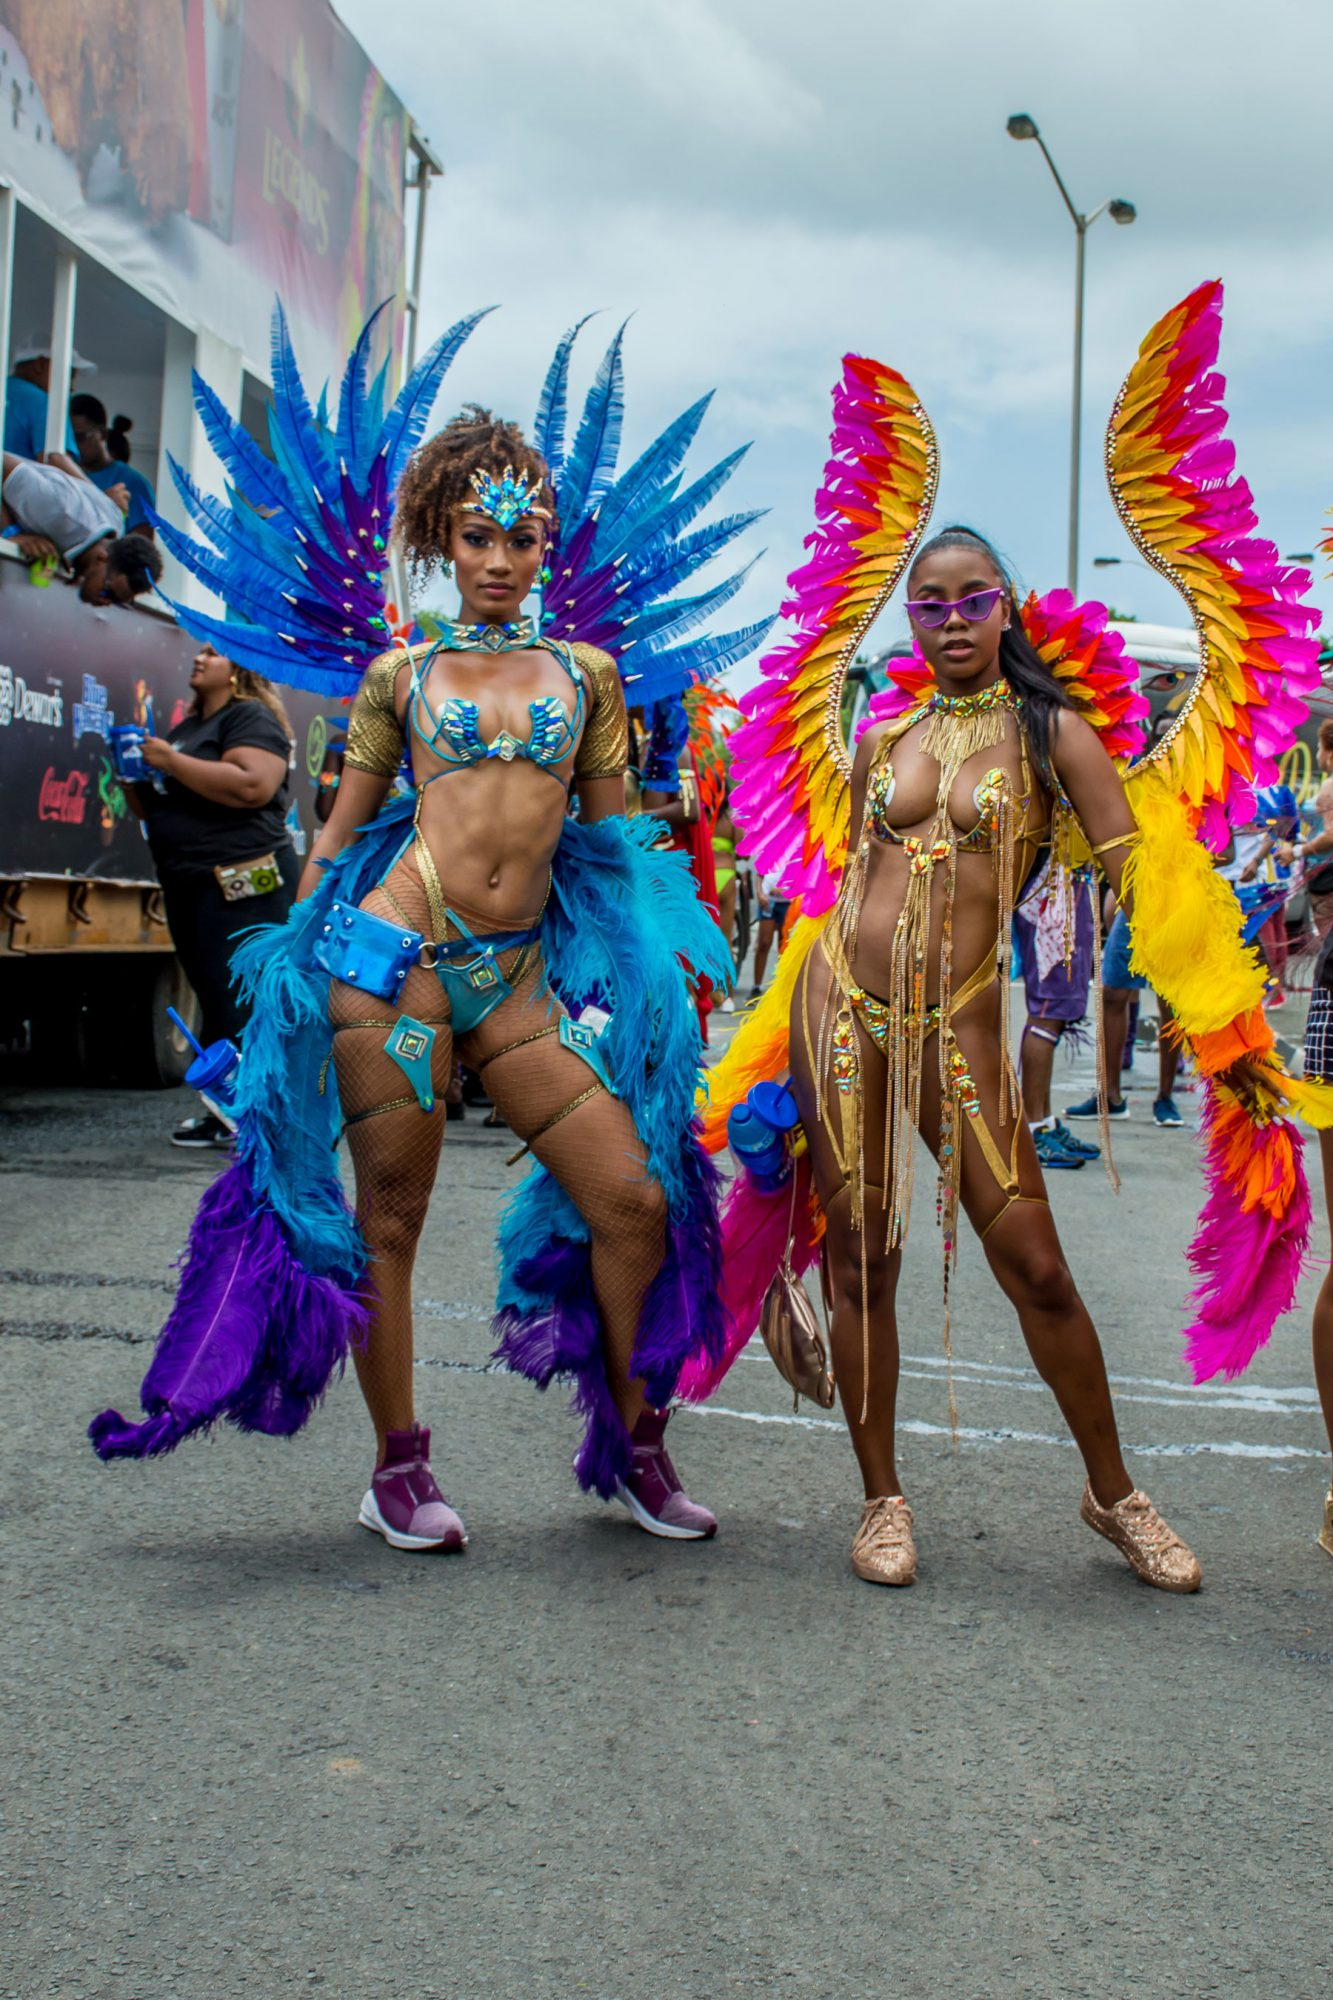 Woman posing in carnival outfits